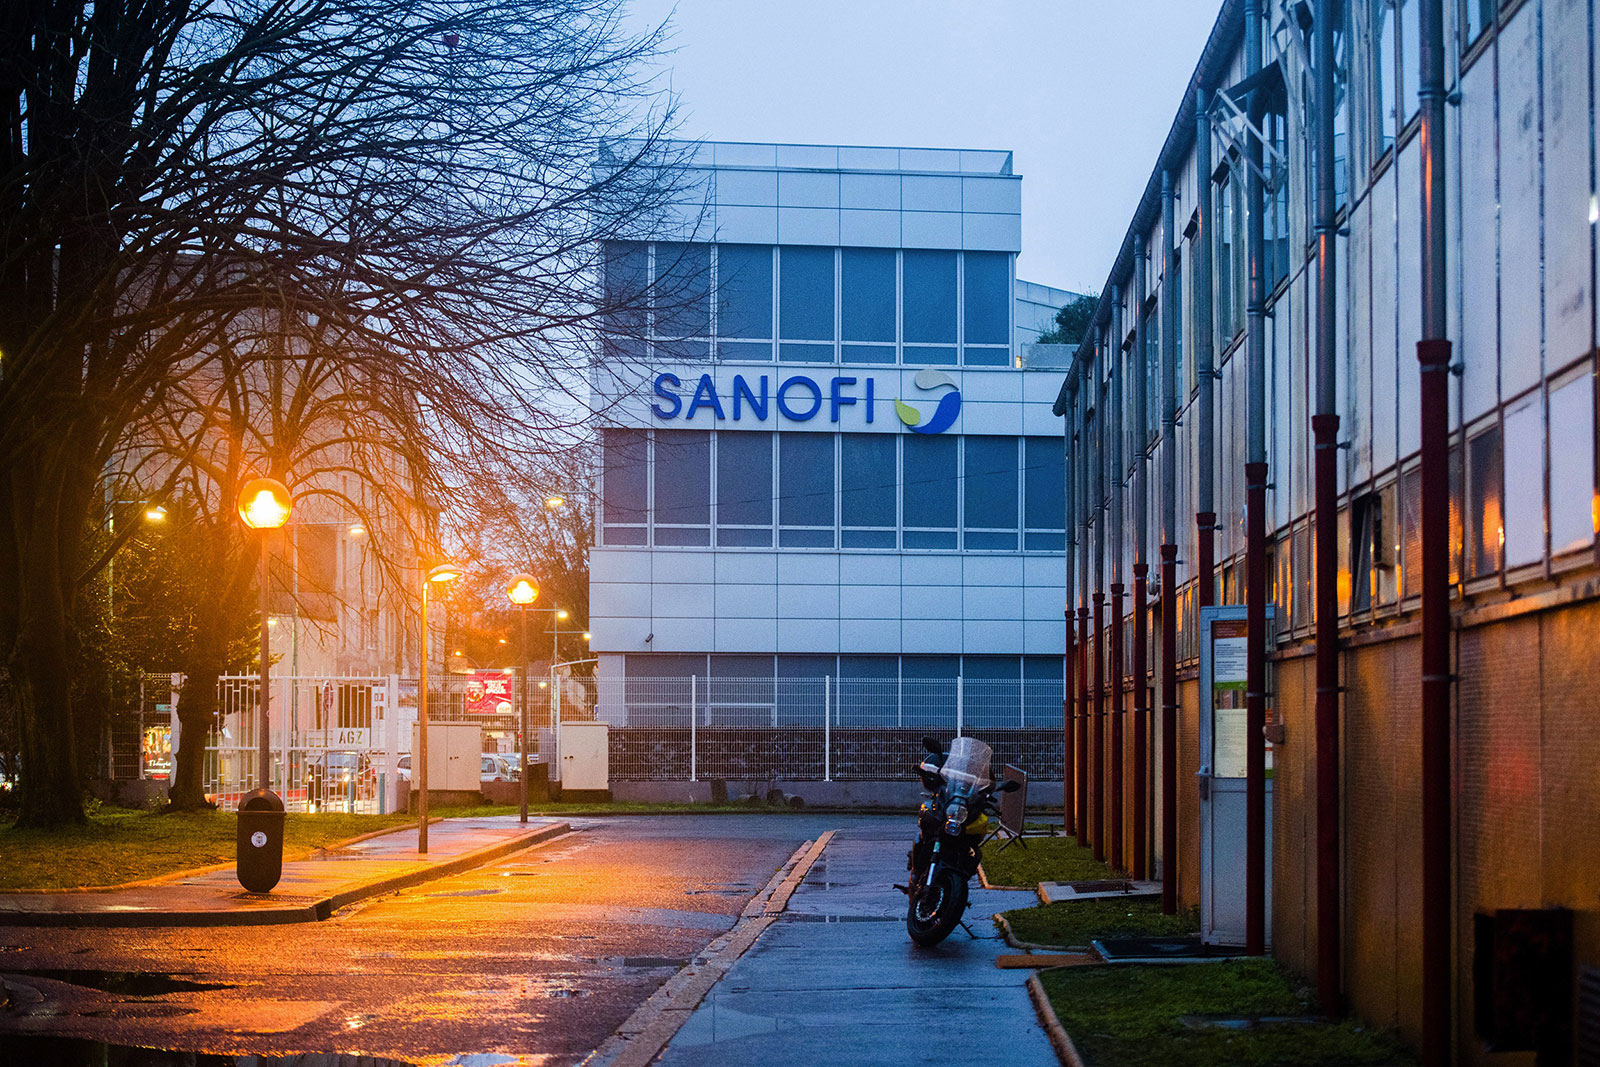 The Sanofi campus in Paris, France.